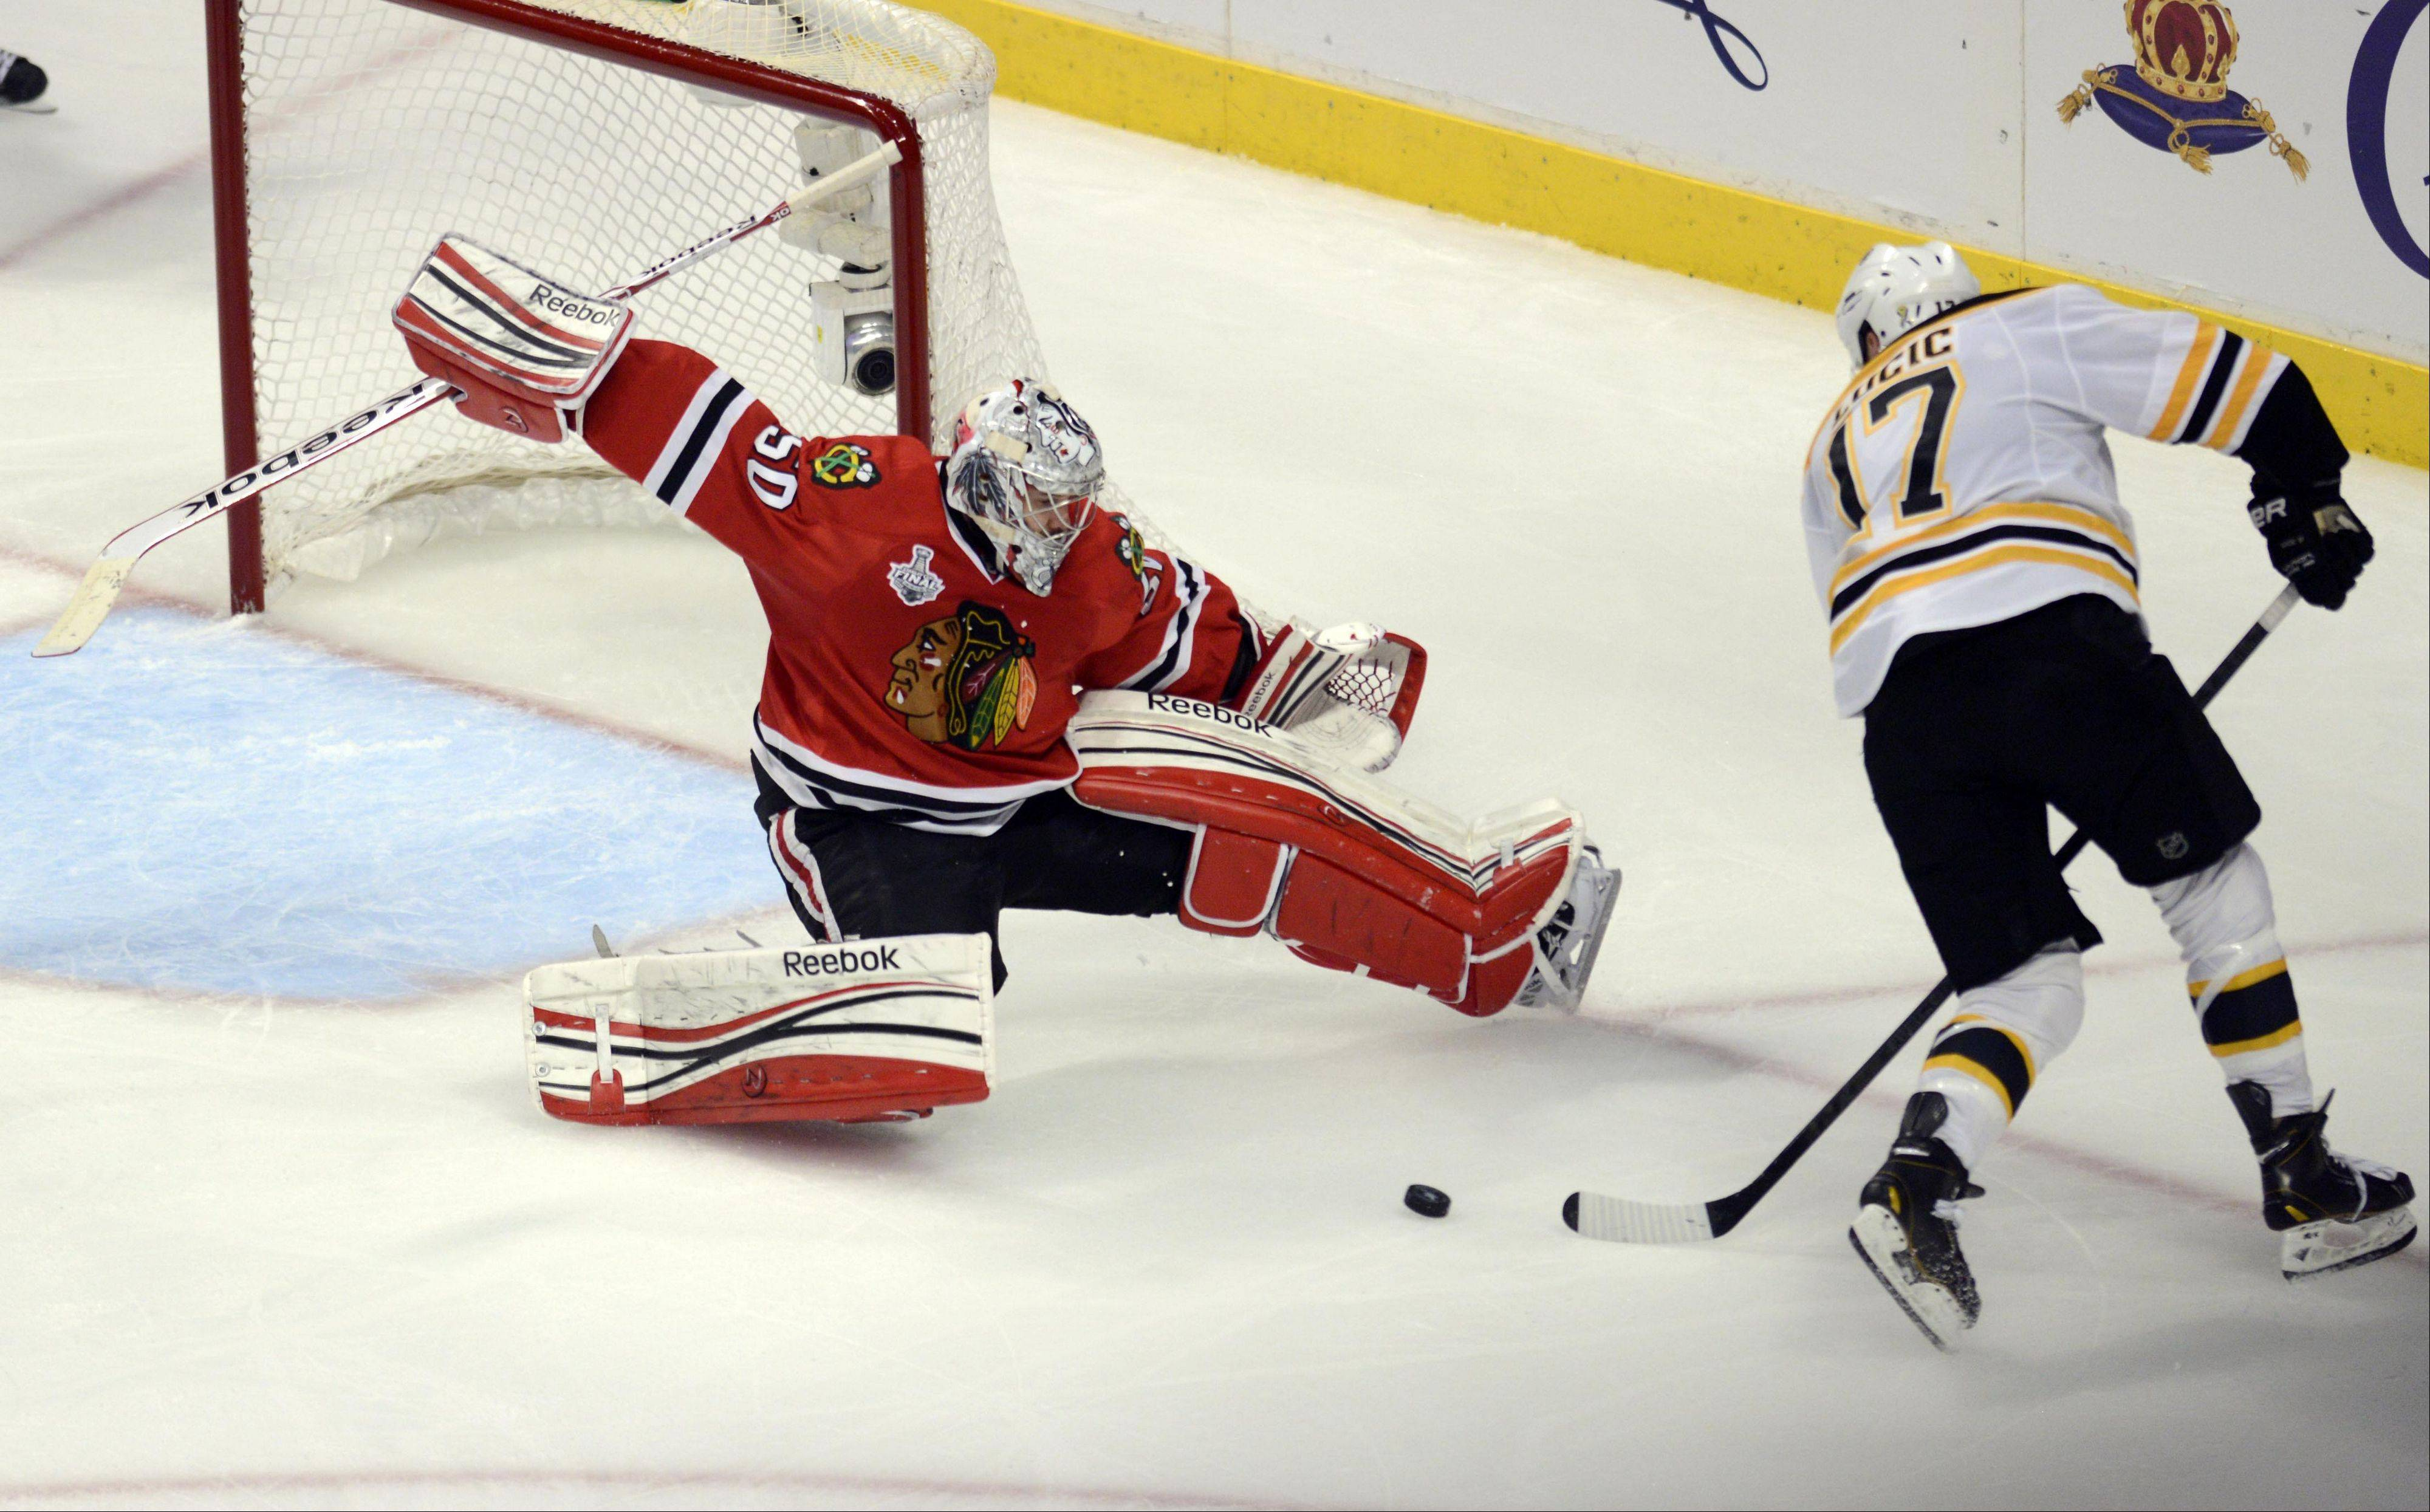 Blackhawks goalie Corey Crawford blocks a shot by Milan Lucic of the Bruins late in the third period of Game 1 of the Stanley Cup Final on Wednesday at the United Center.